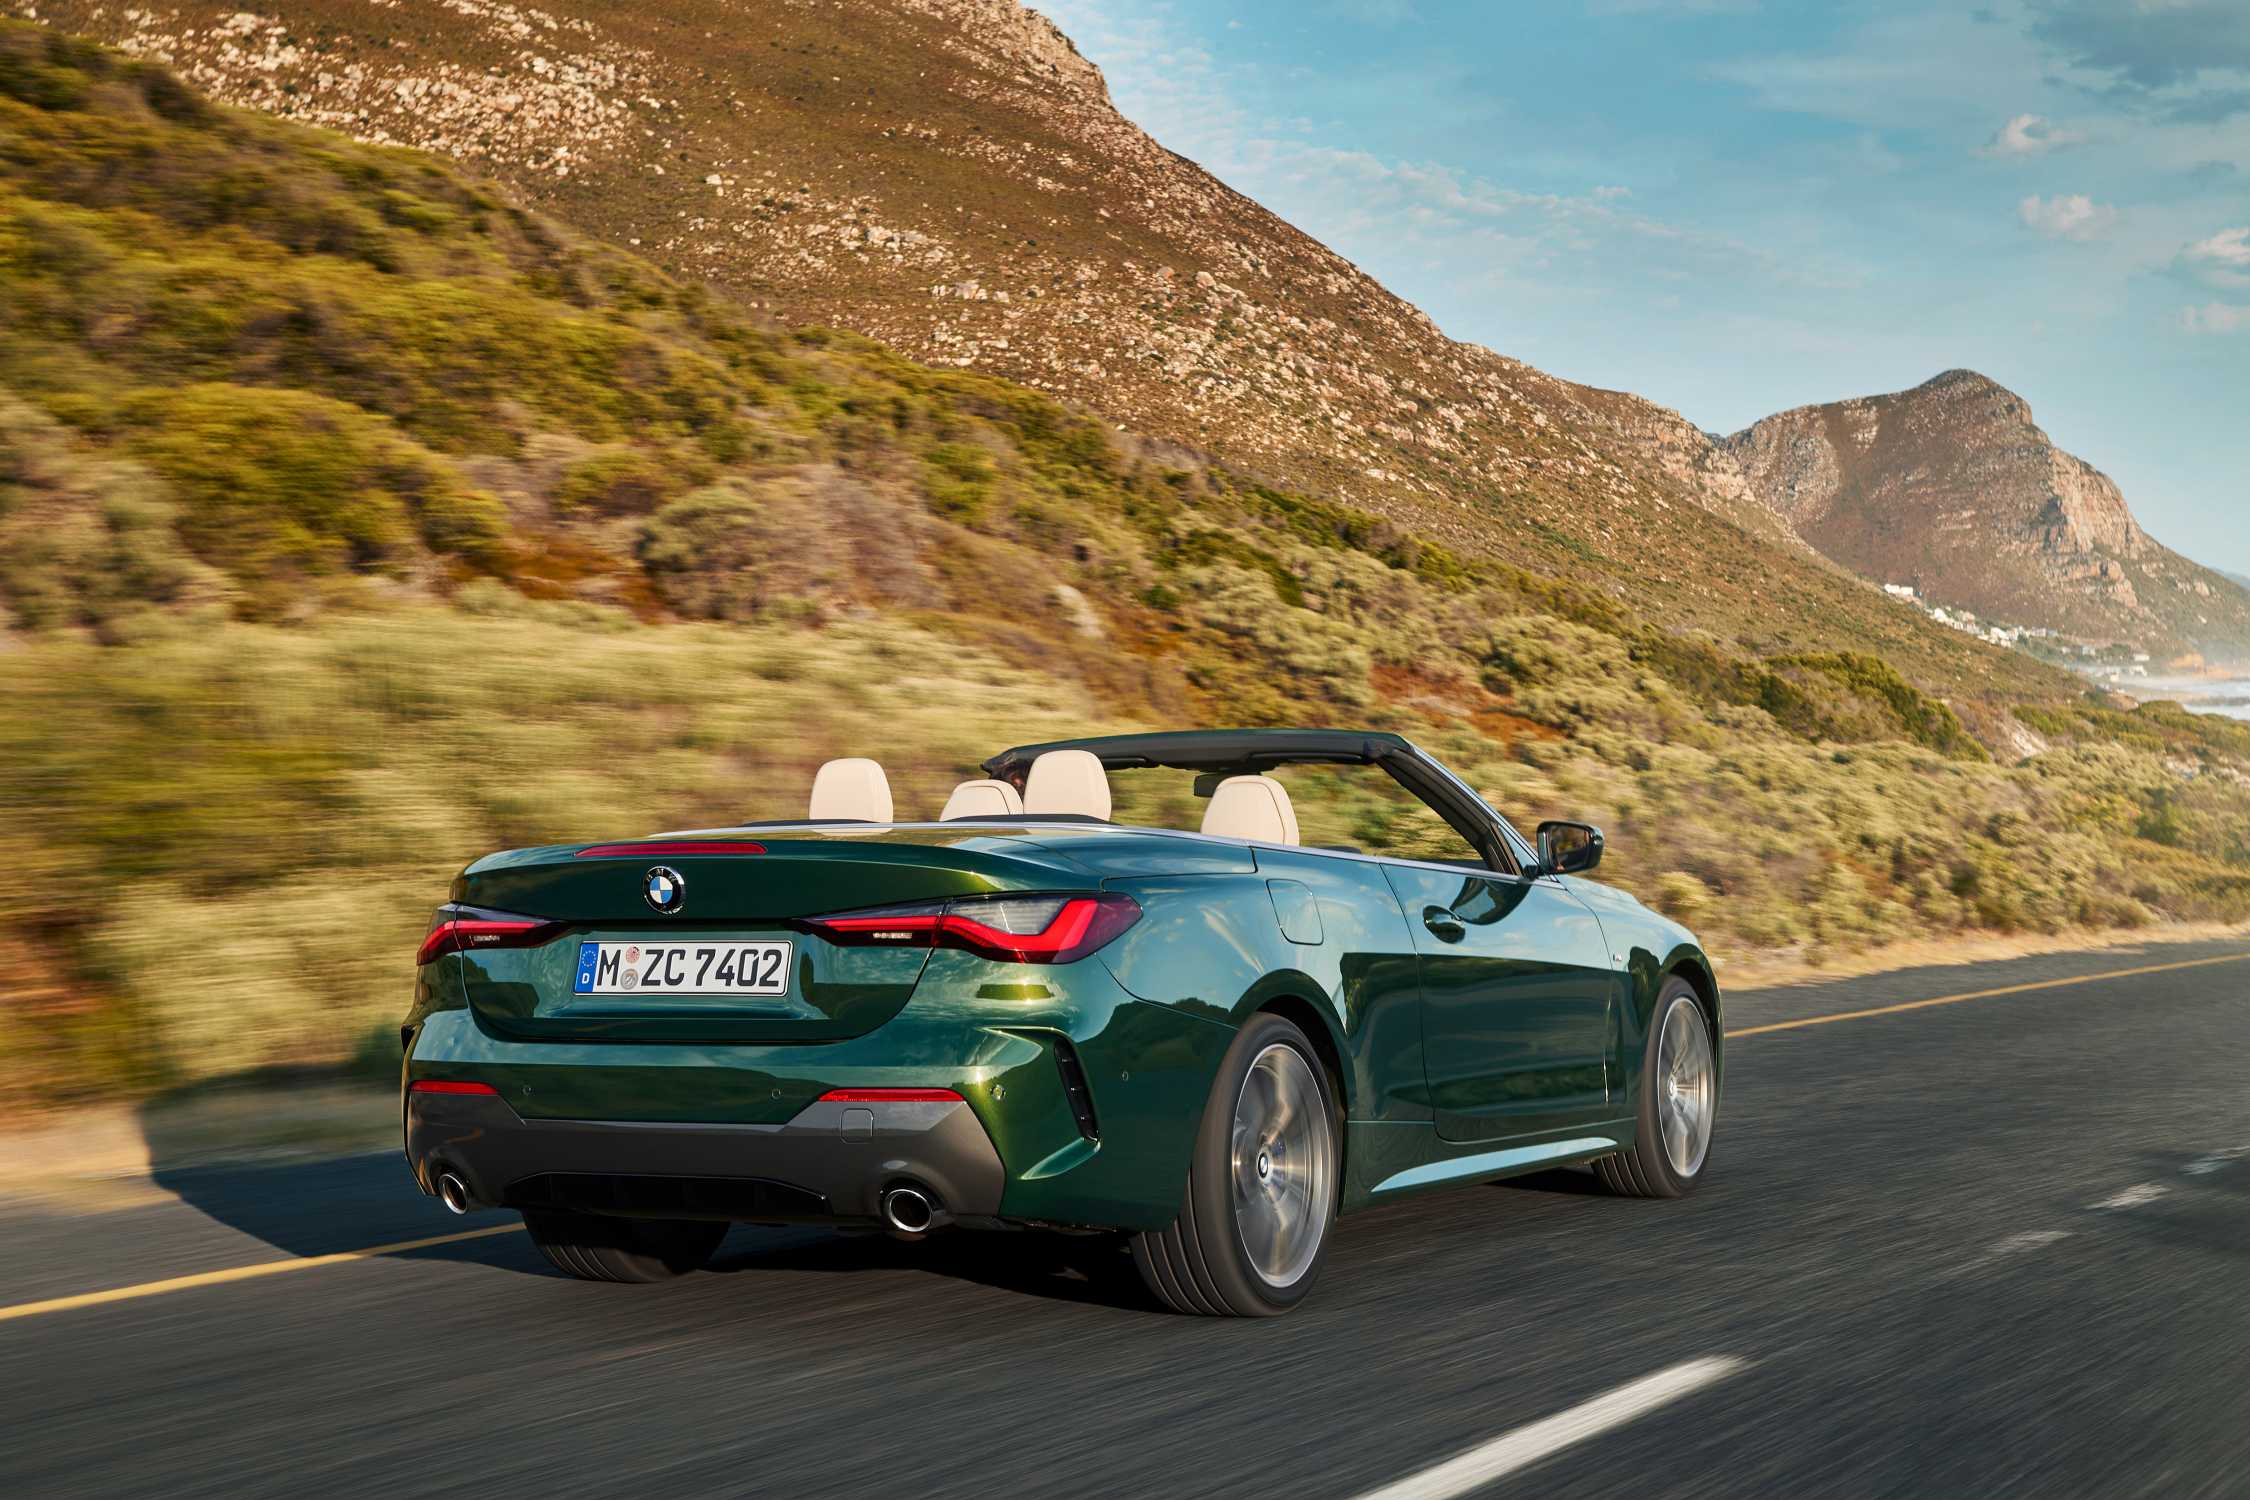 """The all-new BMW 4 Series Convertible, San Remo Green metallic, Rim 19"""" Styling 793i (09/2020)."""